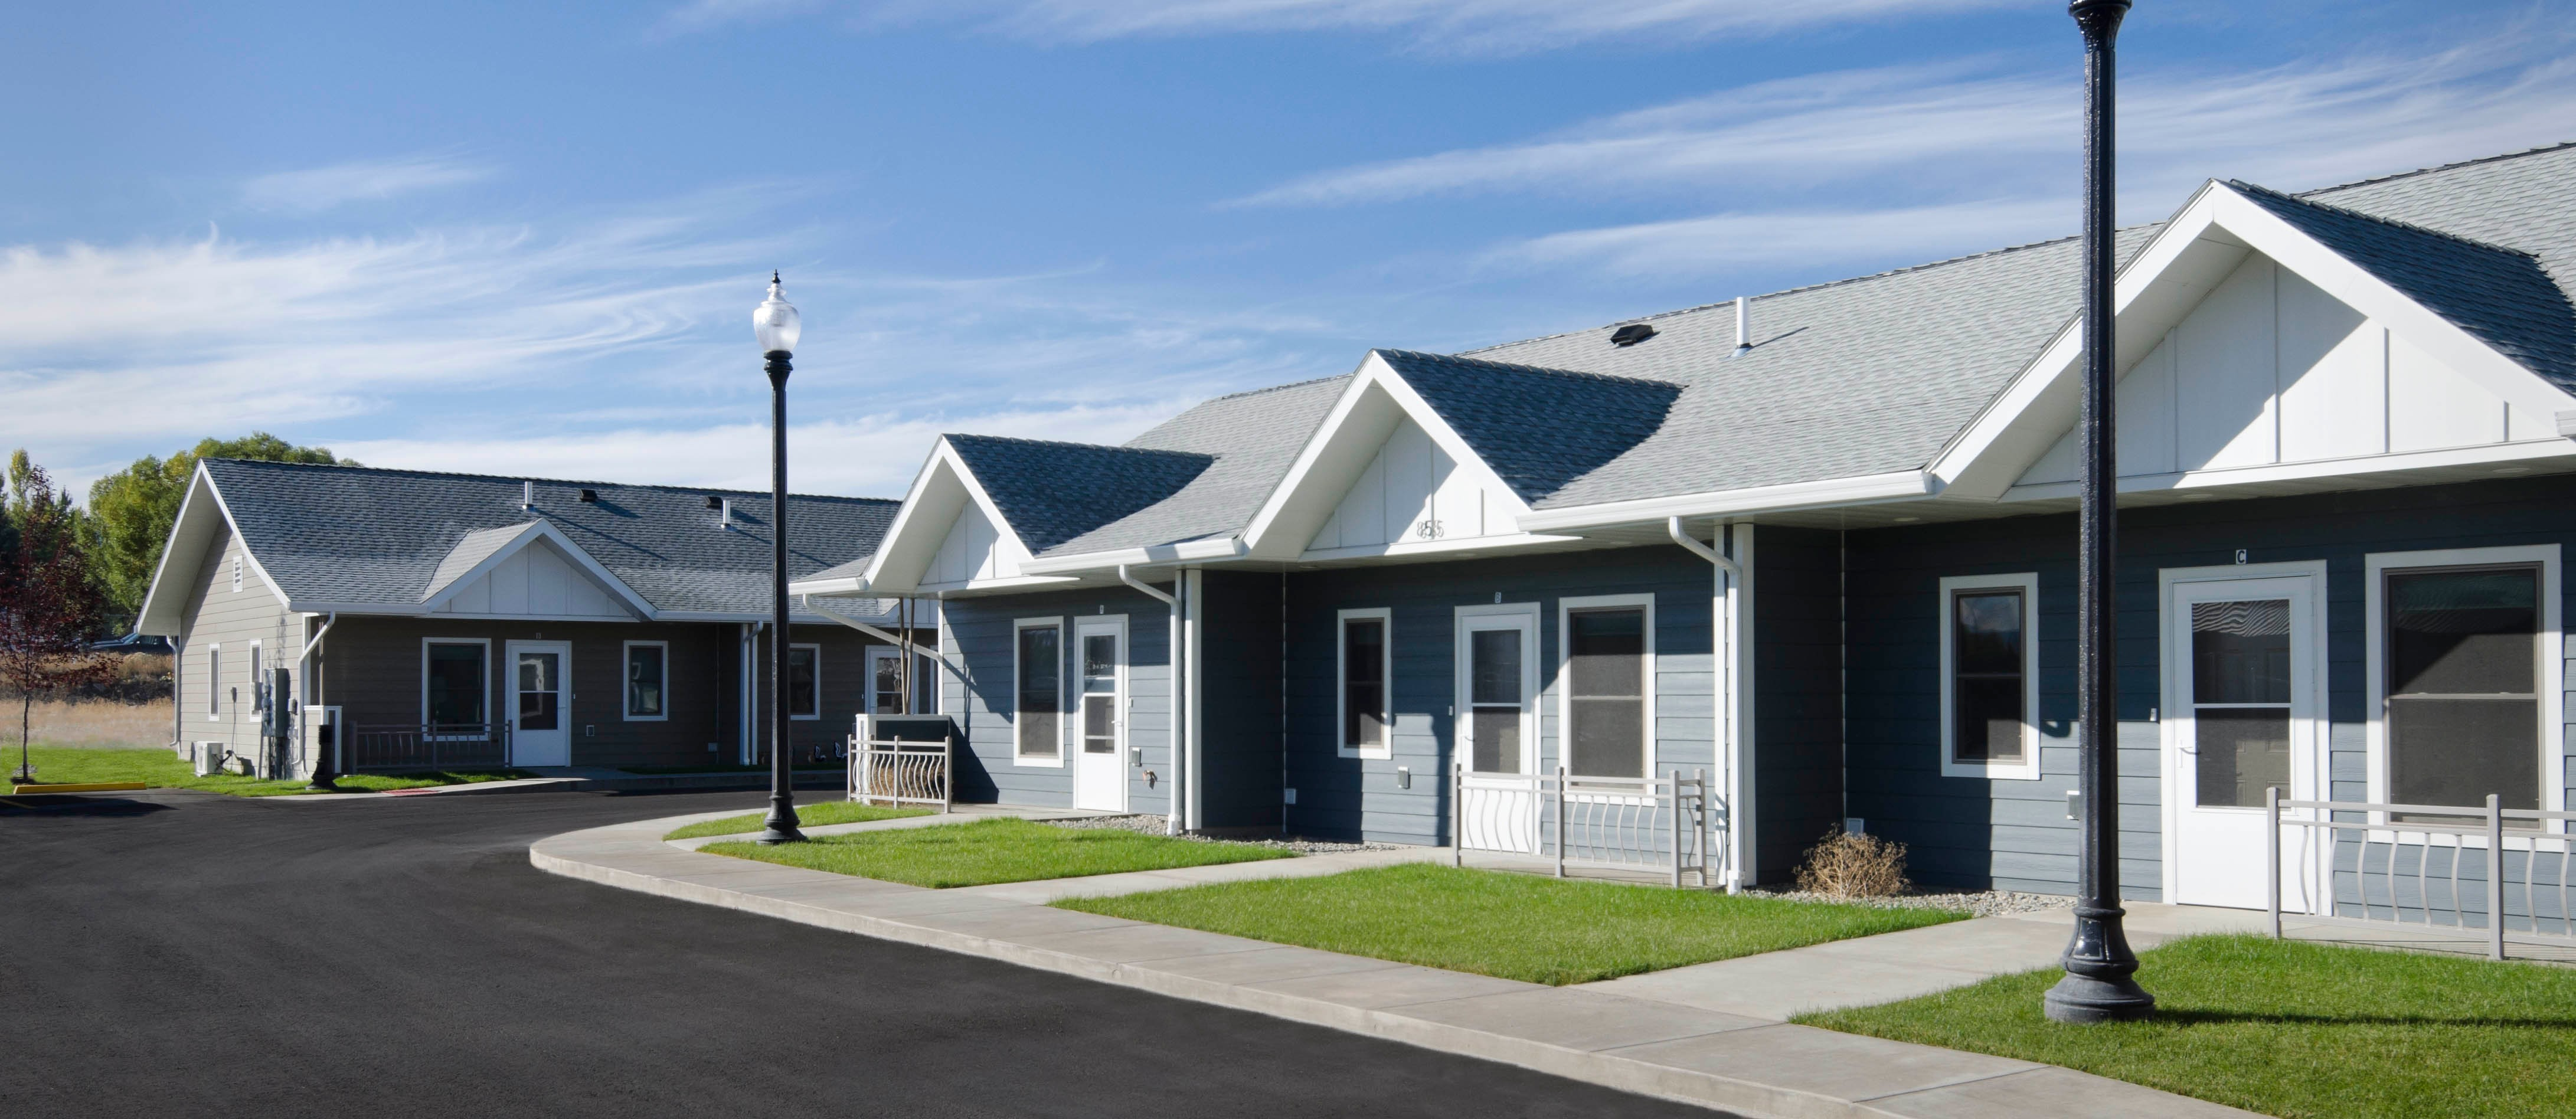 Pictured: Outdoor photo of River Rock residences in Helena, MT.